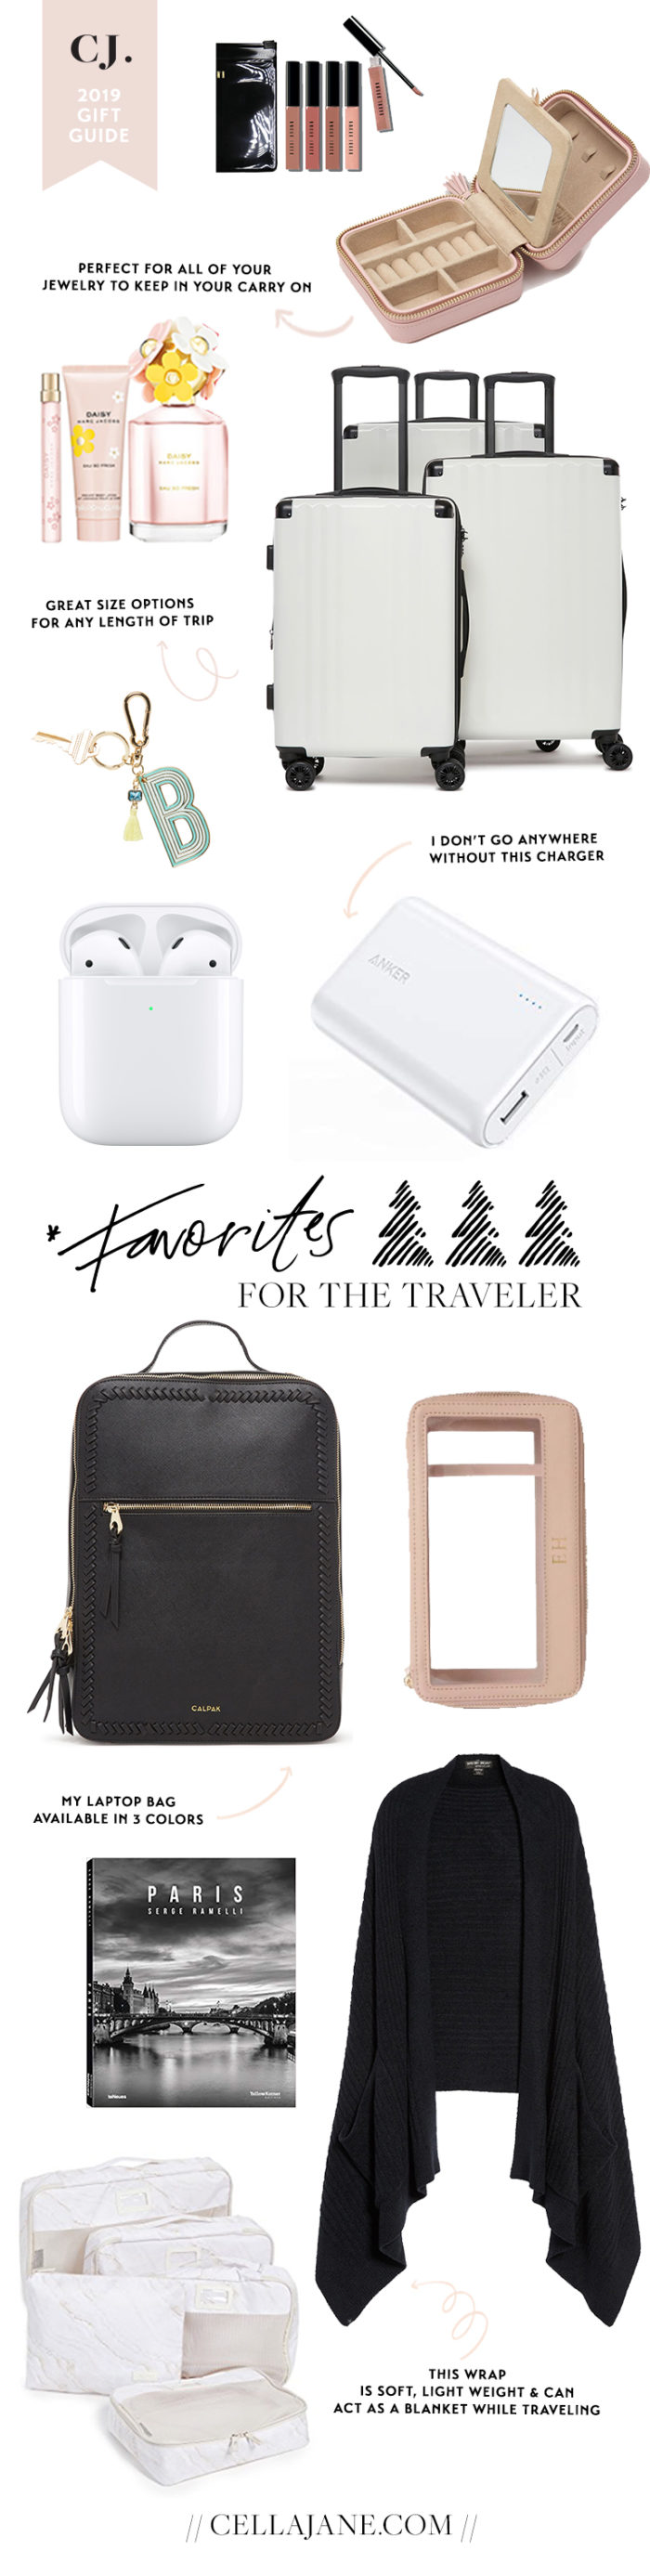 gifts for frequent travelers 2019